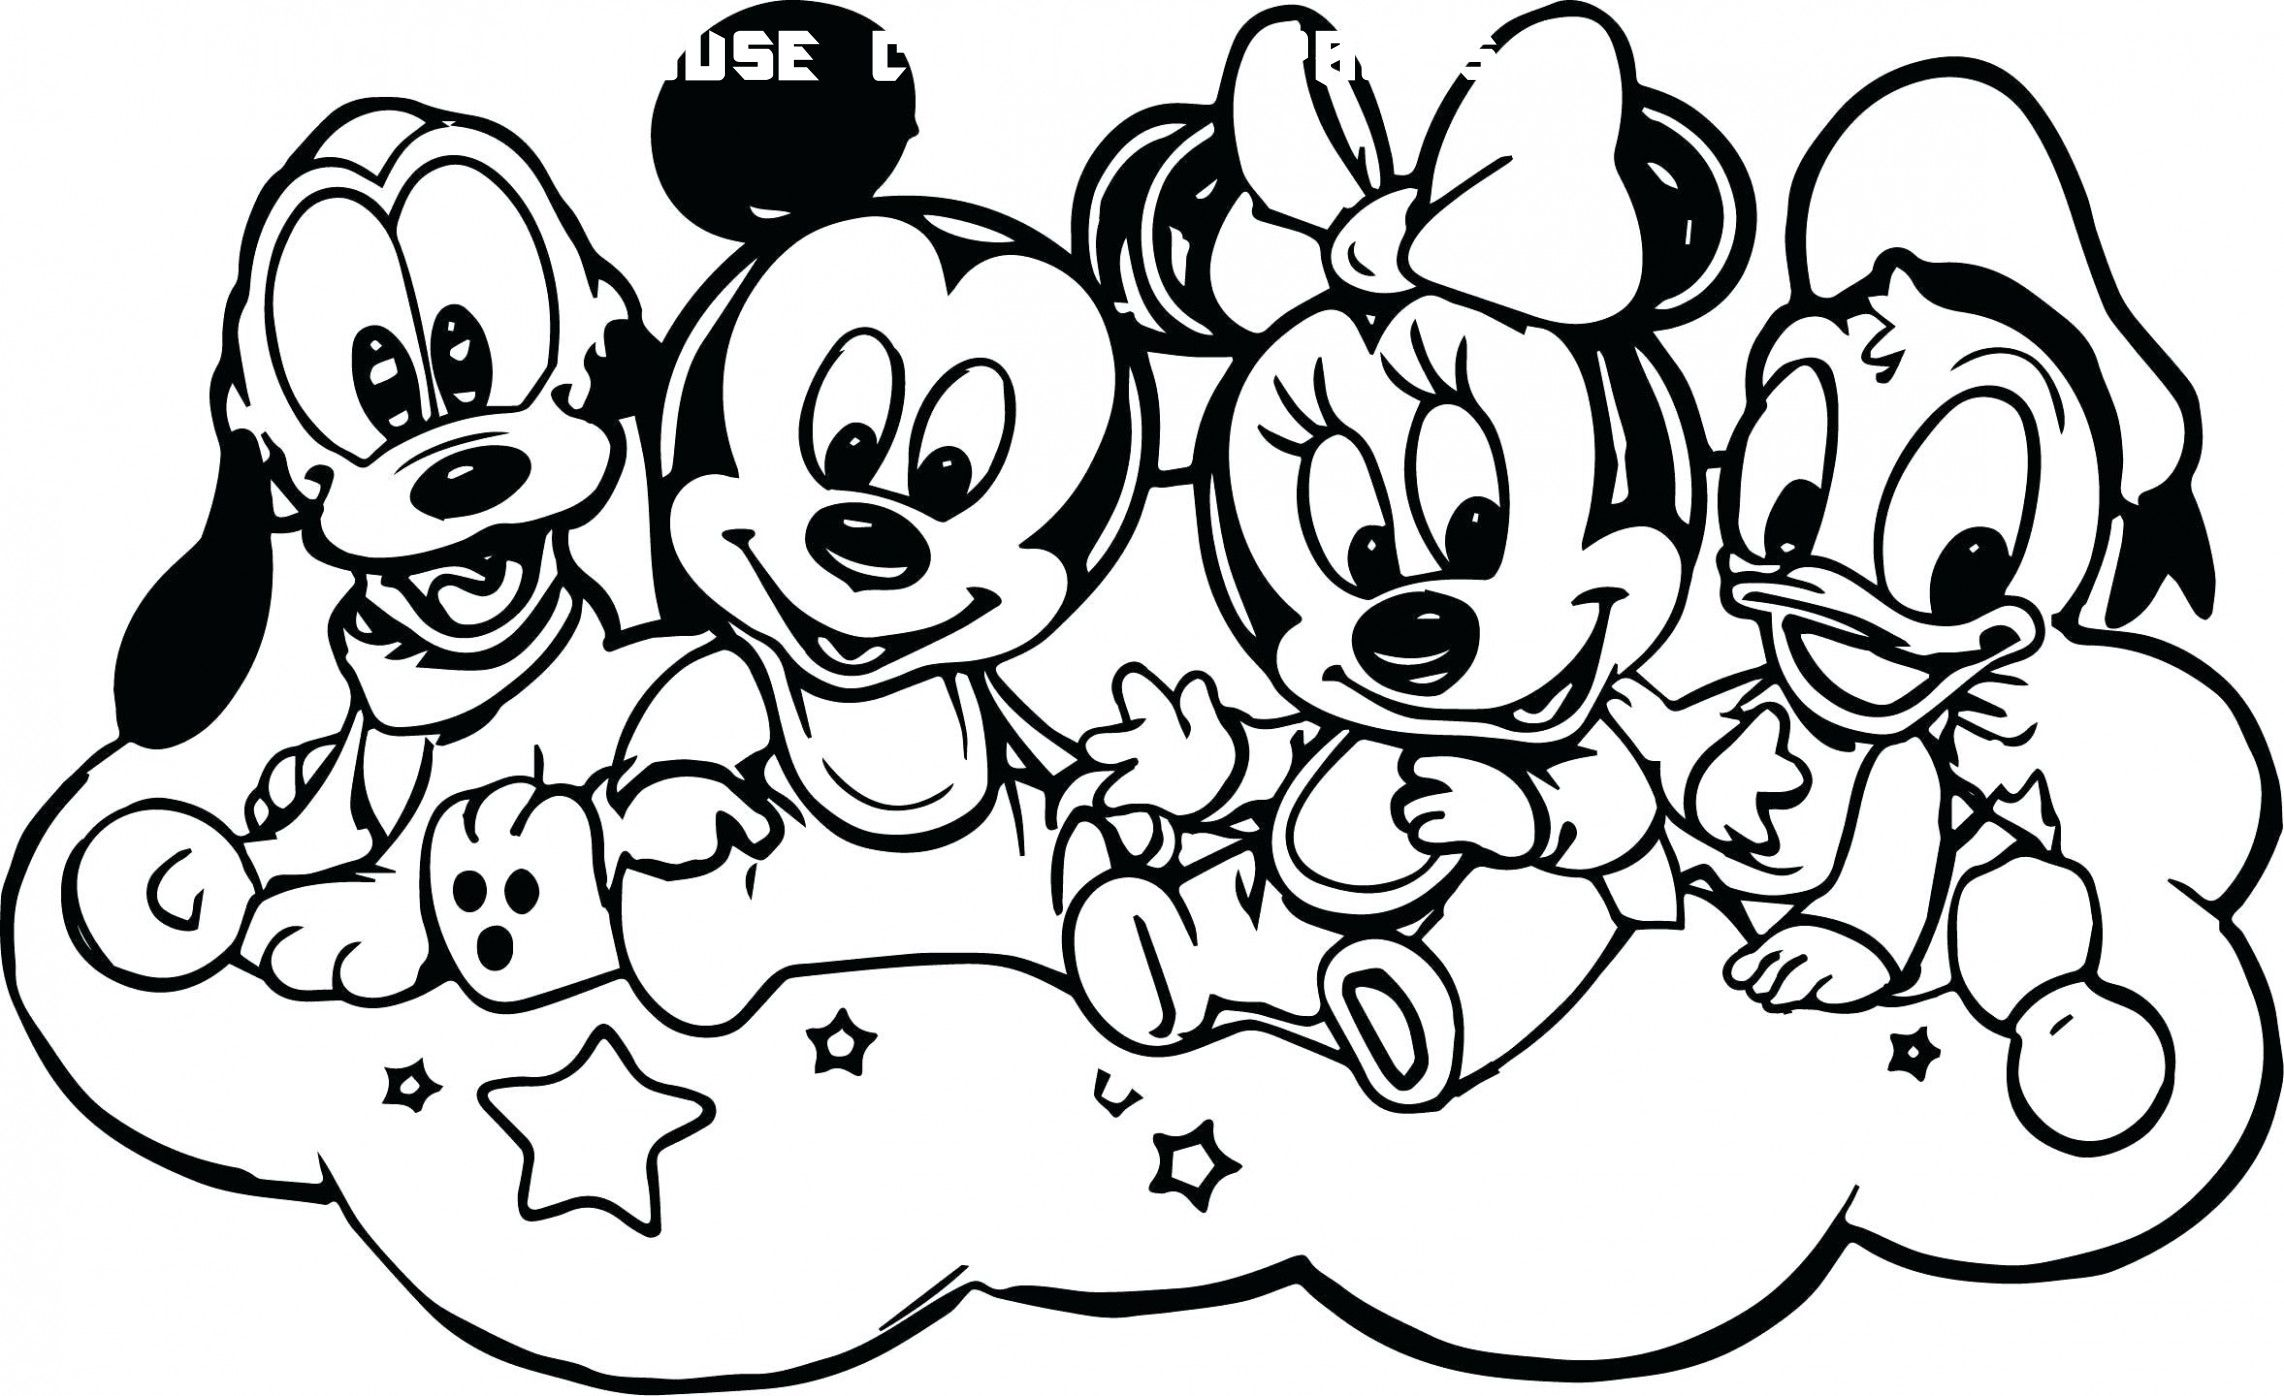 900x898 Mouse Stencil Mickey Face Outline Template Cake Head Tattoo Mickey Mickey Mouse Drawings Minnie Mouse Coloring Pages Mouse Drawing